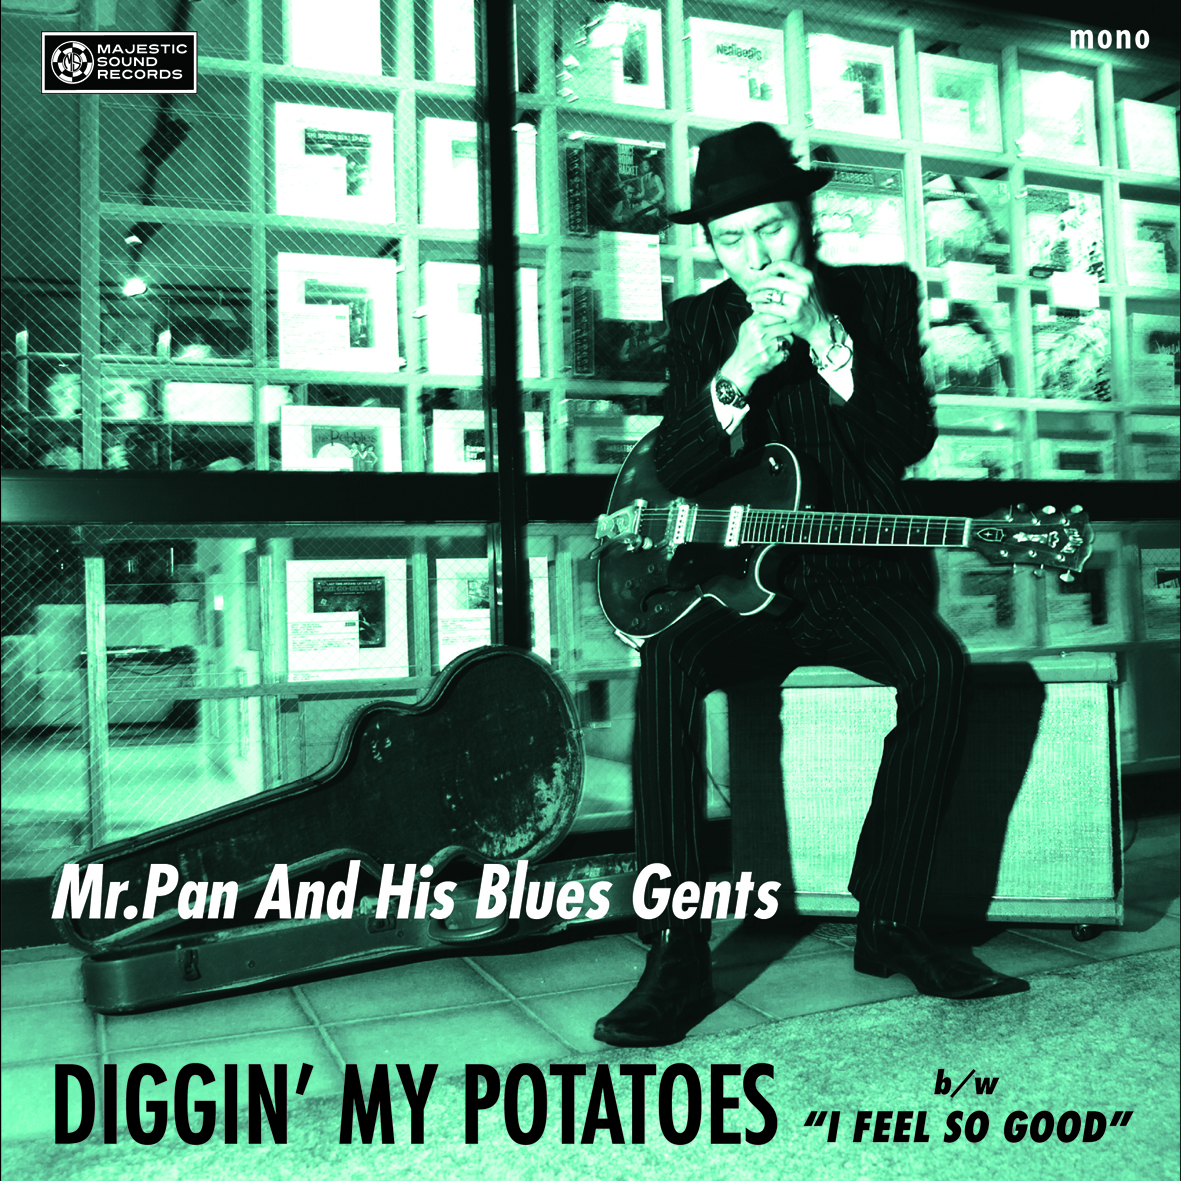 021_2_MR.PAN AND HIS BLUES GENTS	DIGGIN' MY POTATOES